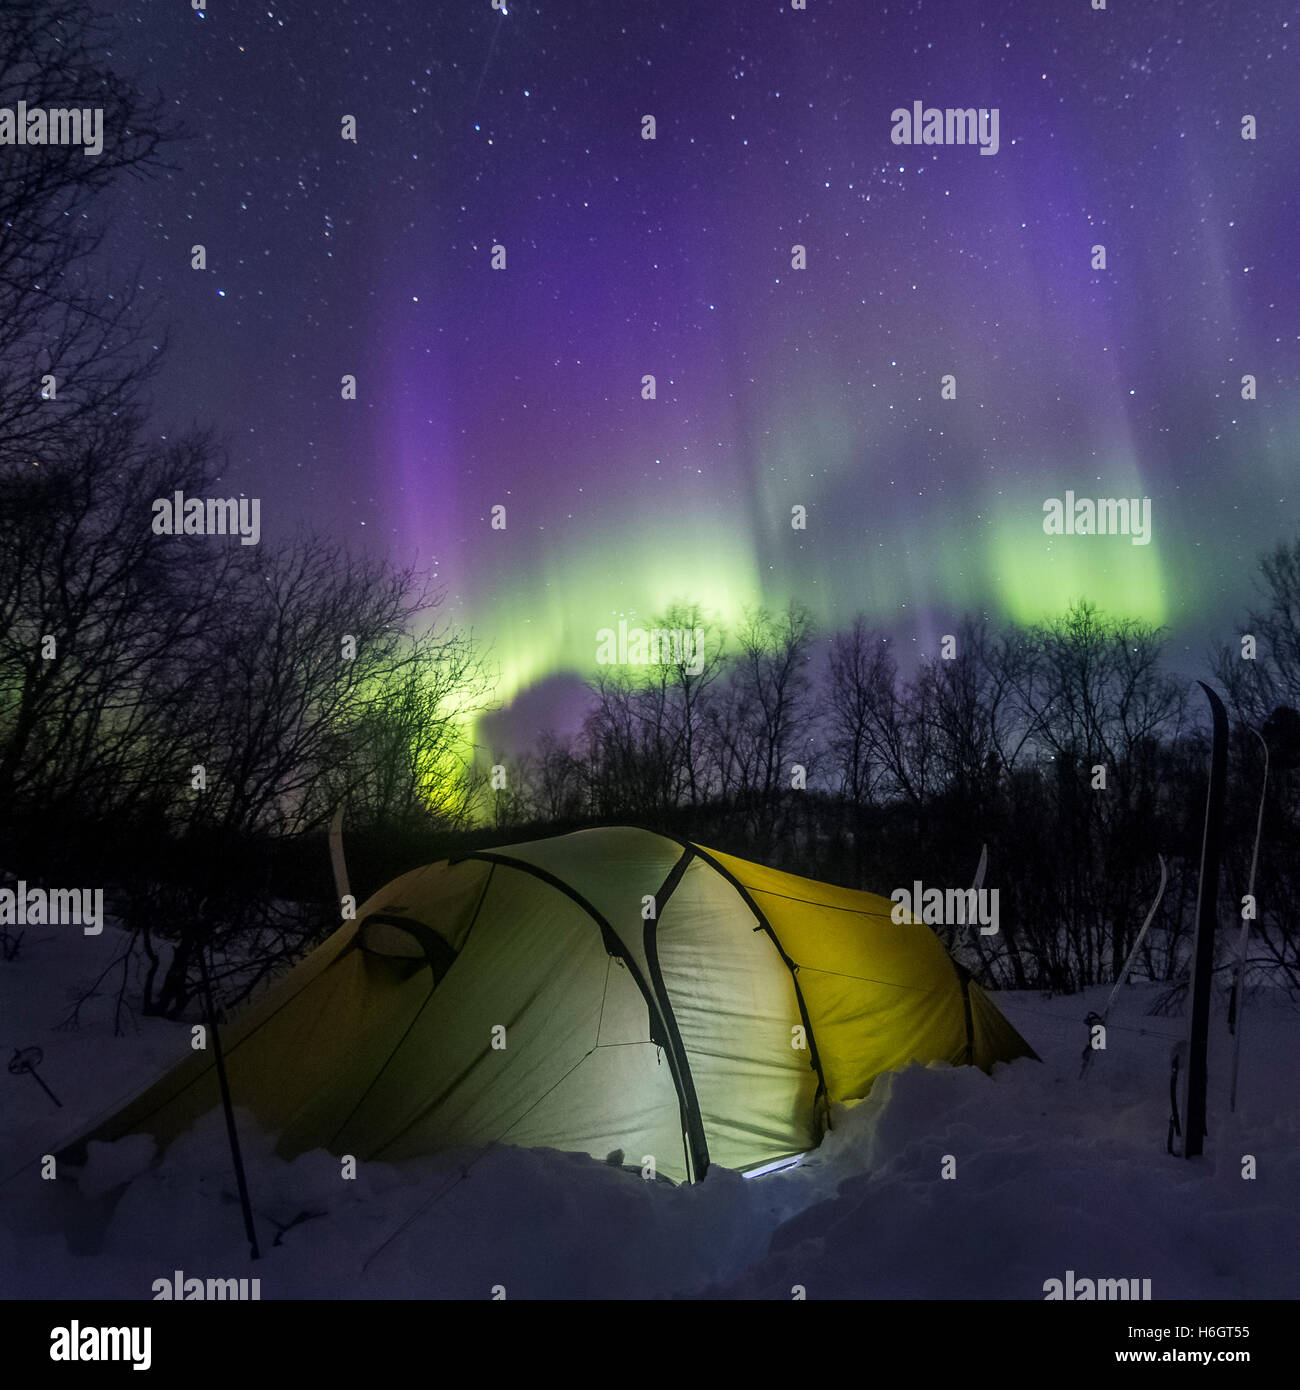 Tenting under the auroras in Finland - Stock Image